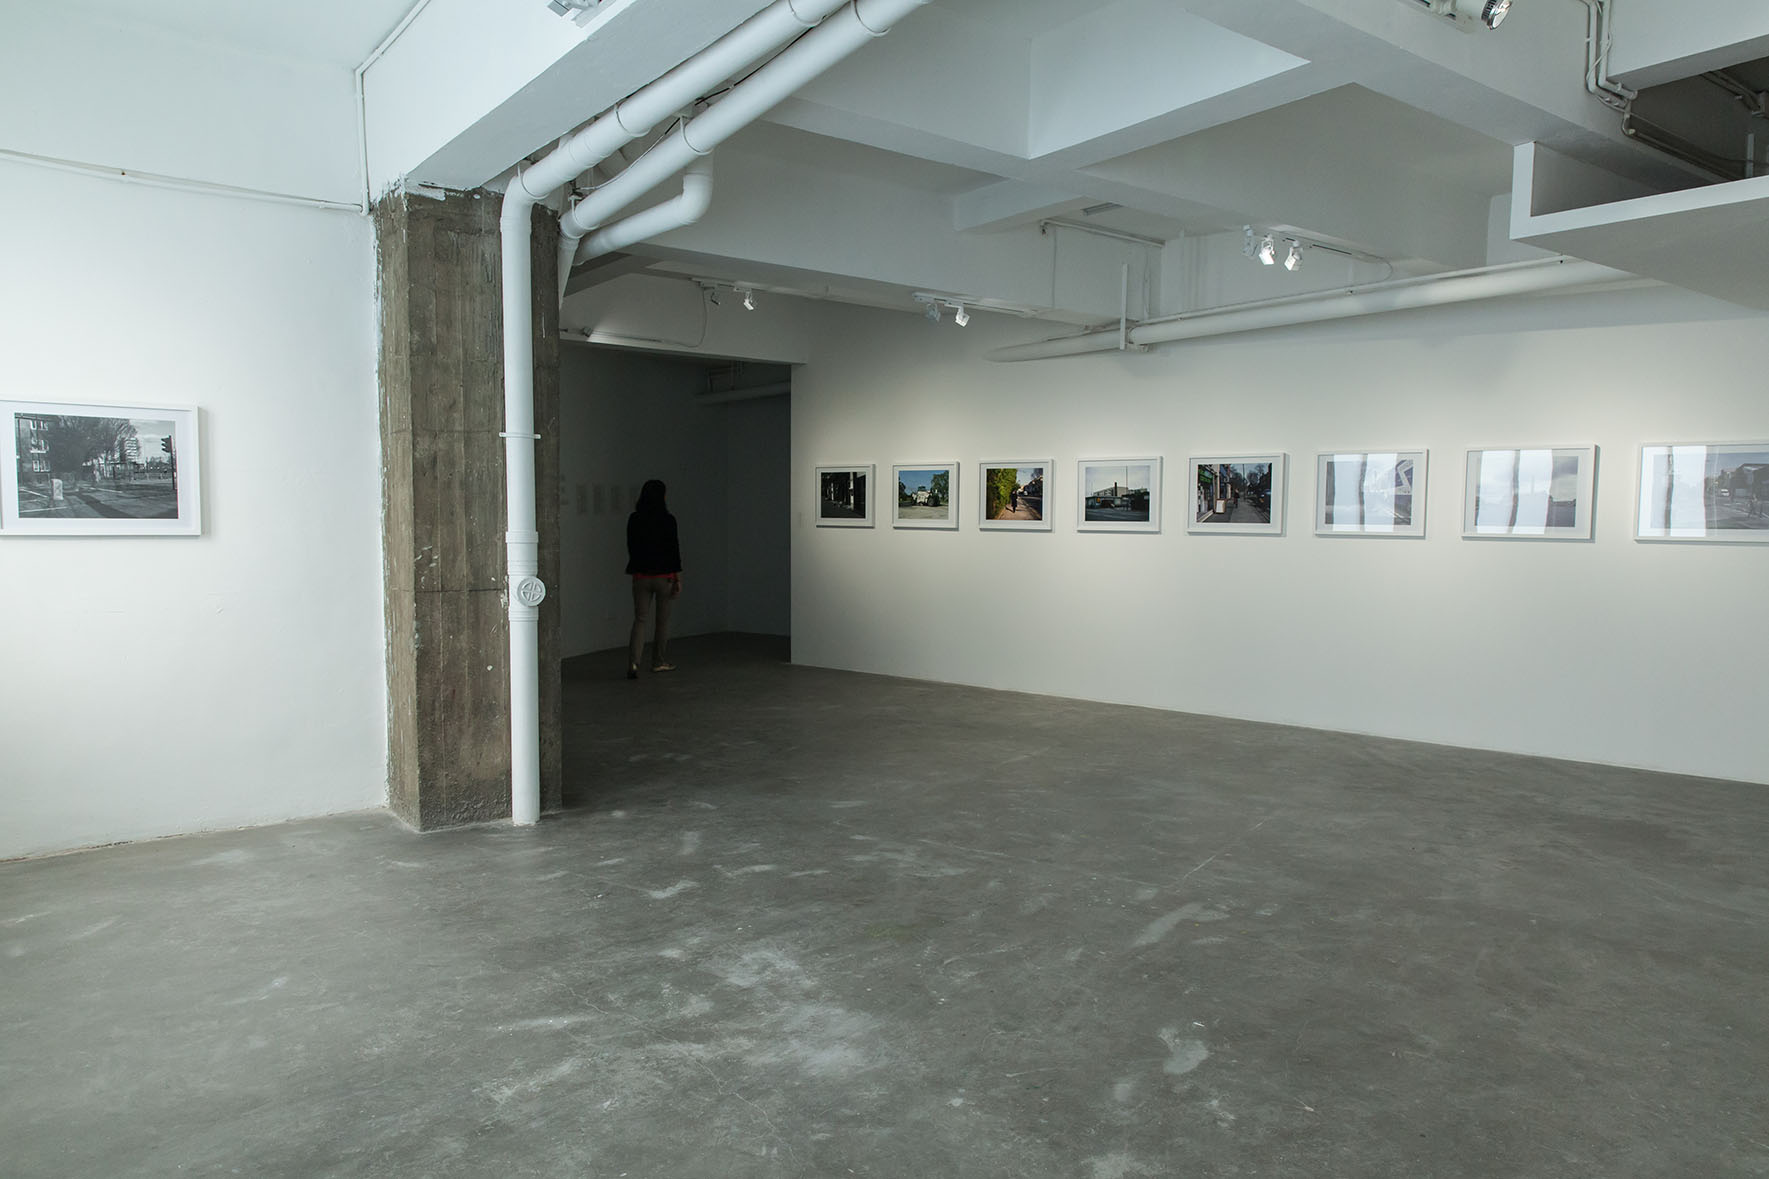 x02-展览现场 exhibition view